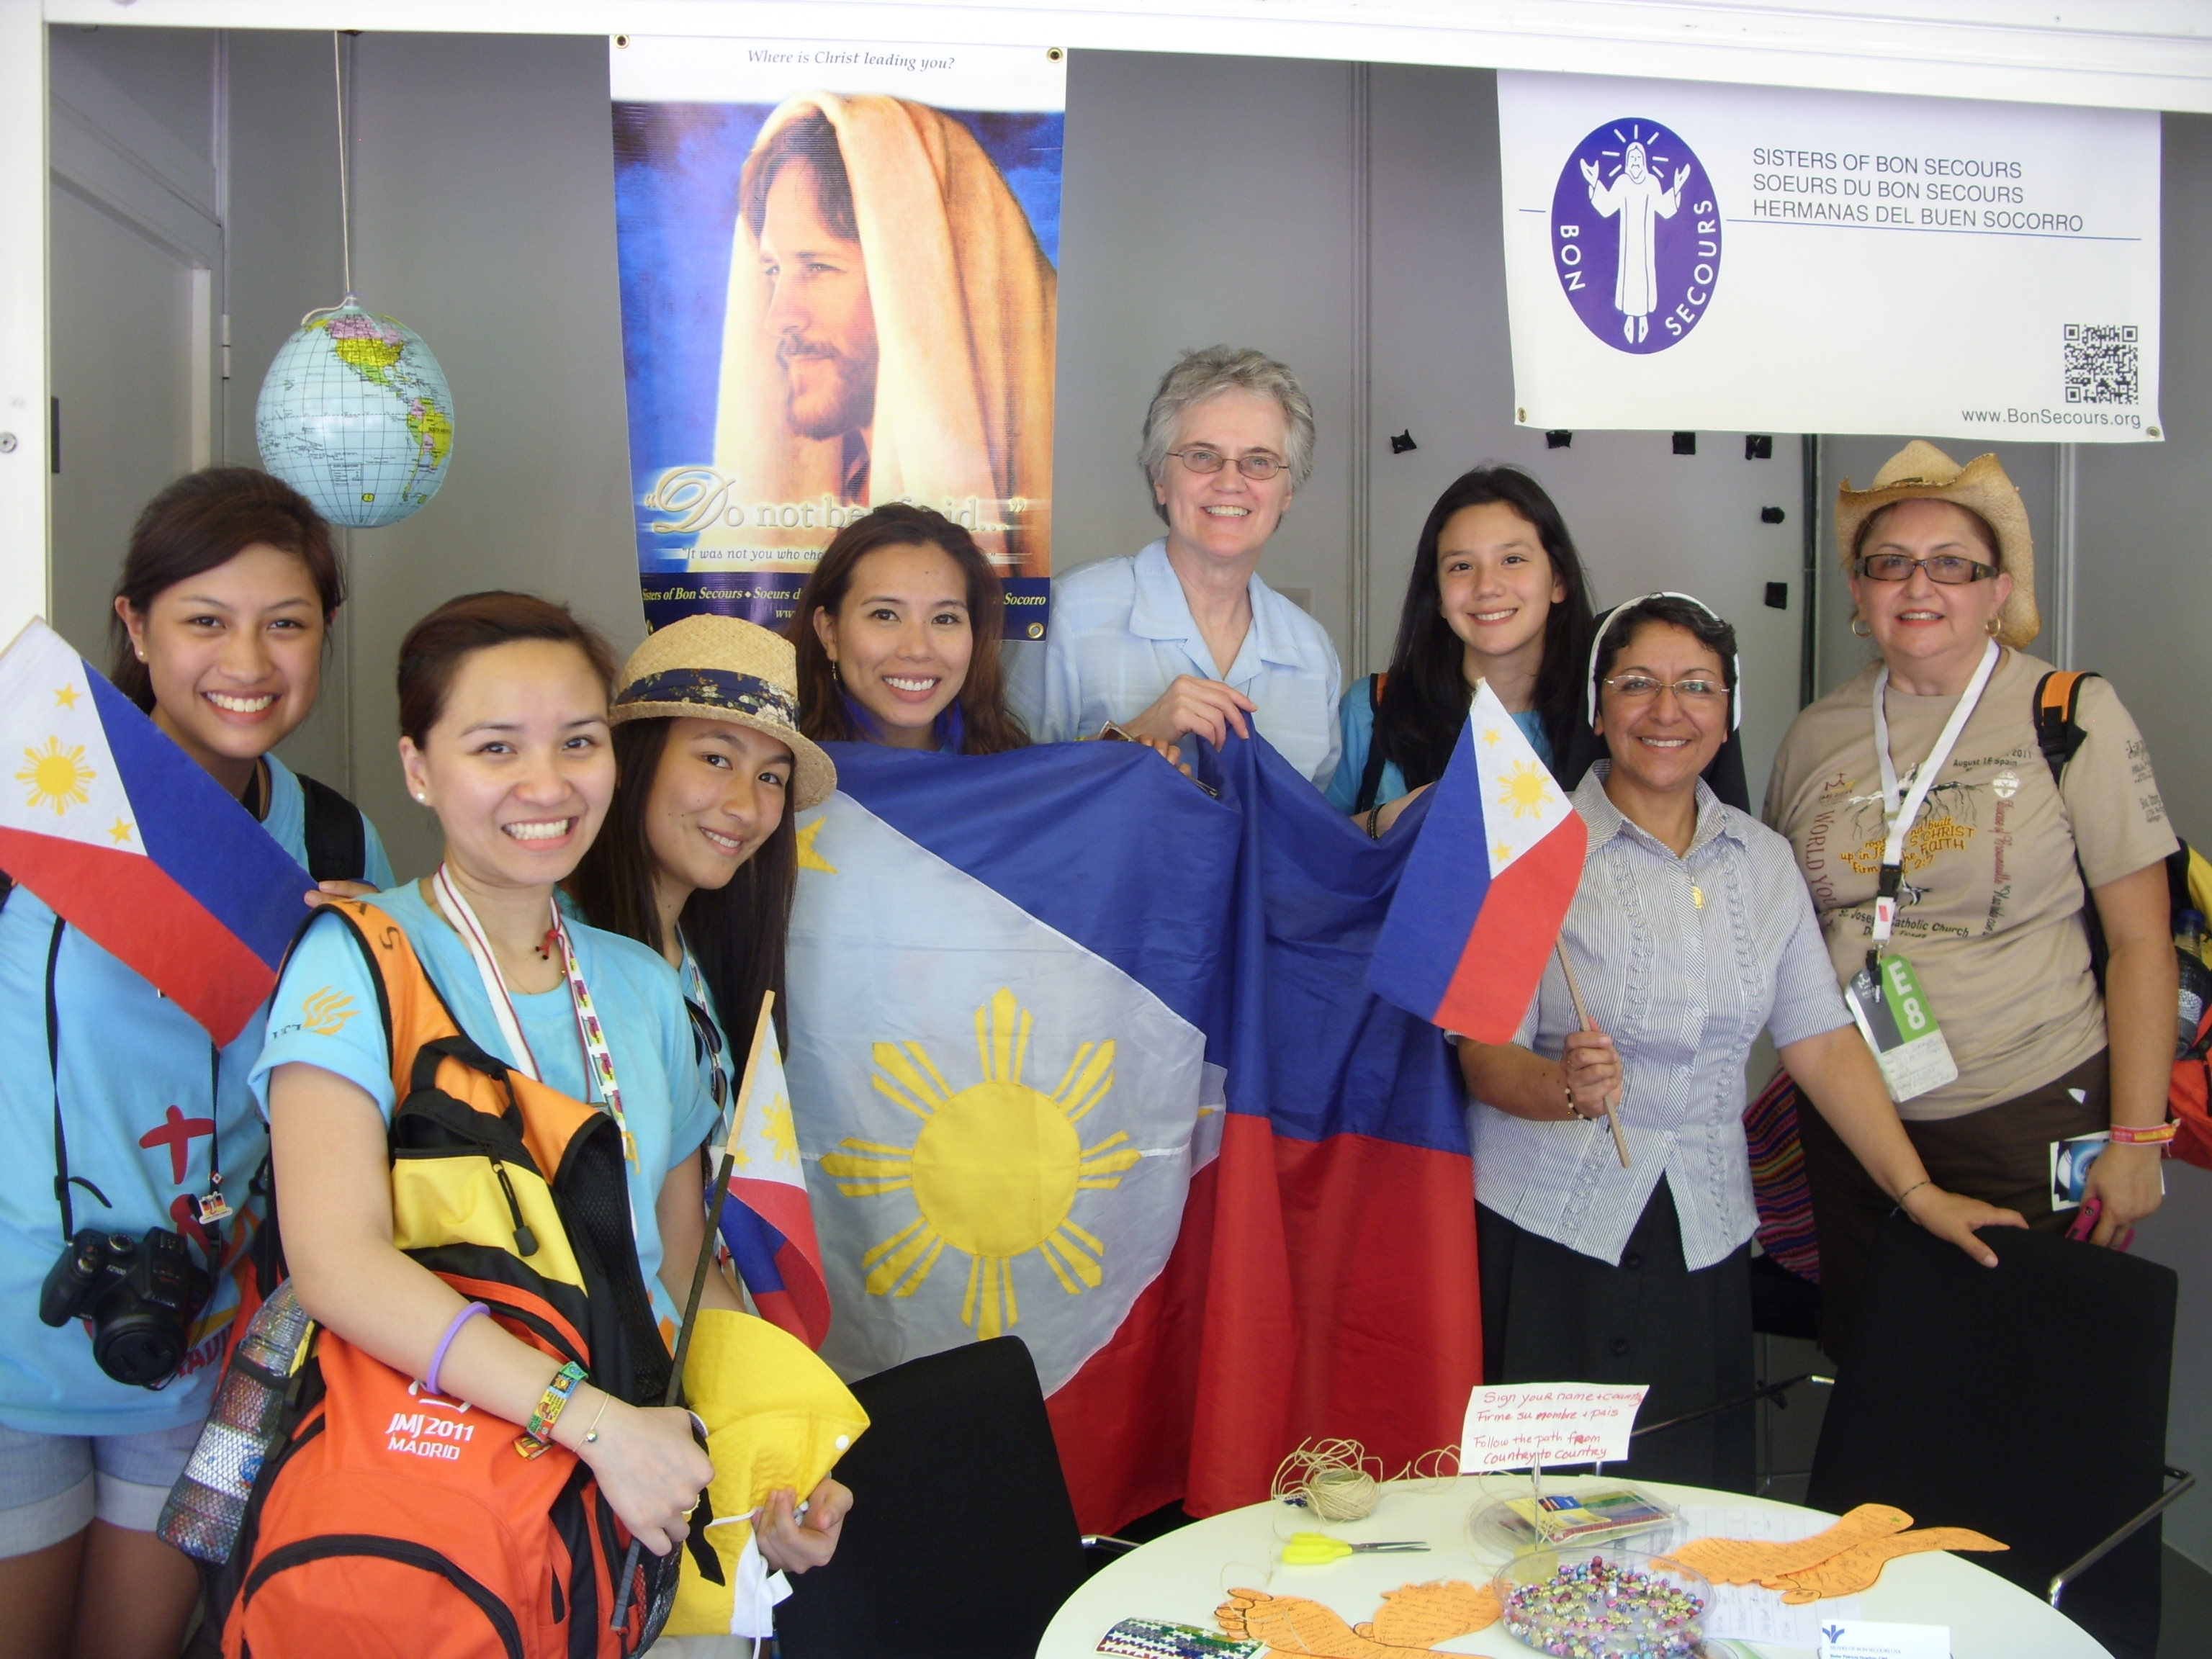 Sisters Pat Dowling and Elena Serrano met with young women from the Phillippines at the Vocation Fair in Madrid, Spain during World Youth Day 2011.